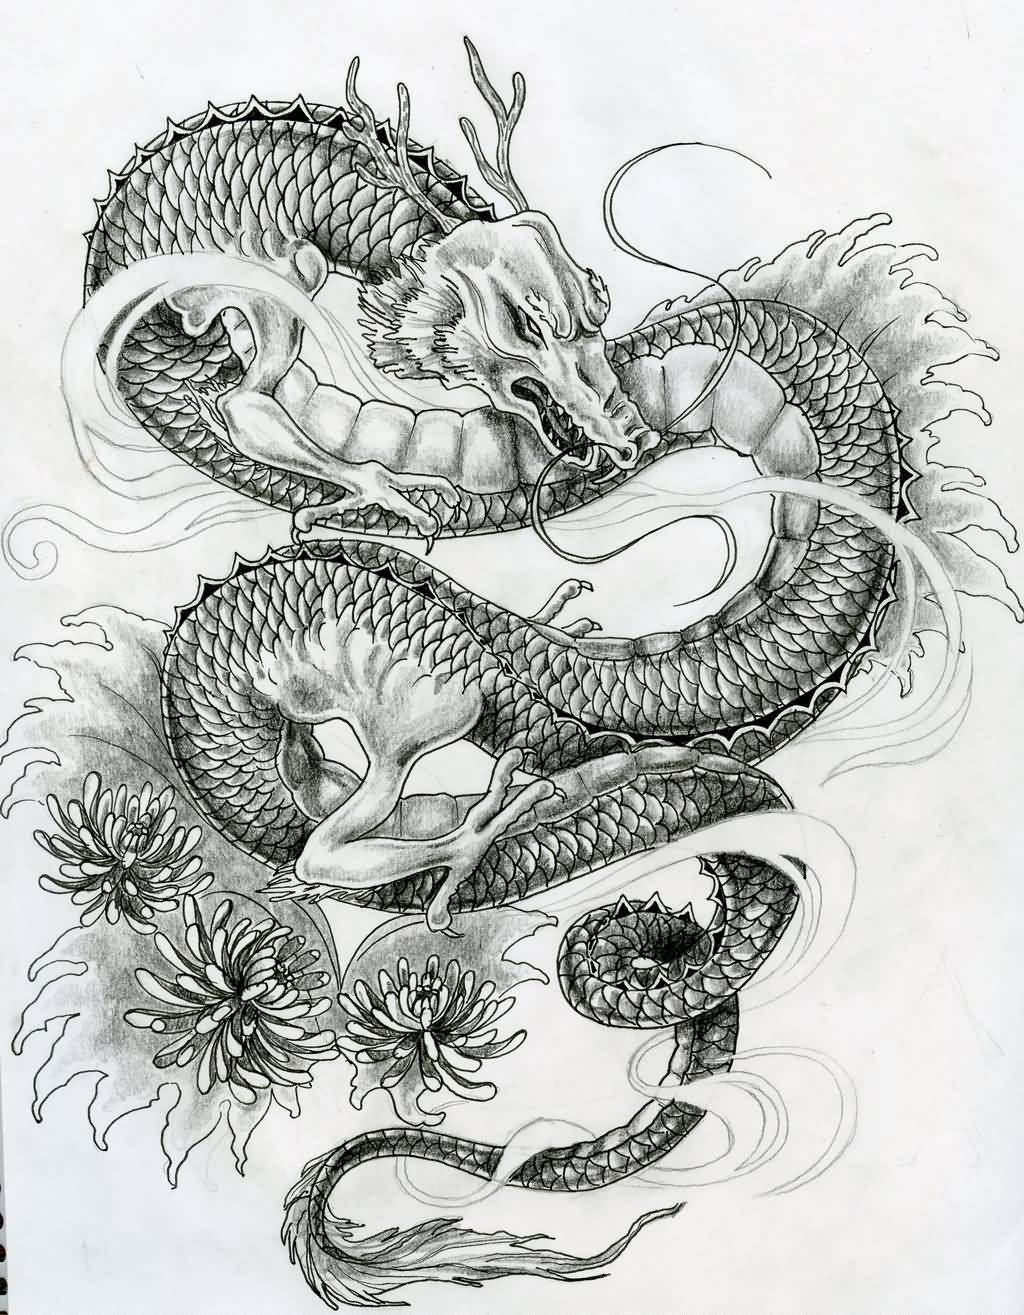 632 Tattoos Best Japanese Tattoo Designs Cultural Japanese Tattoos Page 2 Dragon Tattoos For Men Japanese Dragon Tattoo Dragon Tattoo